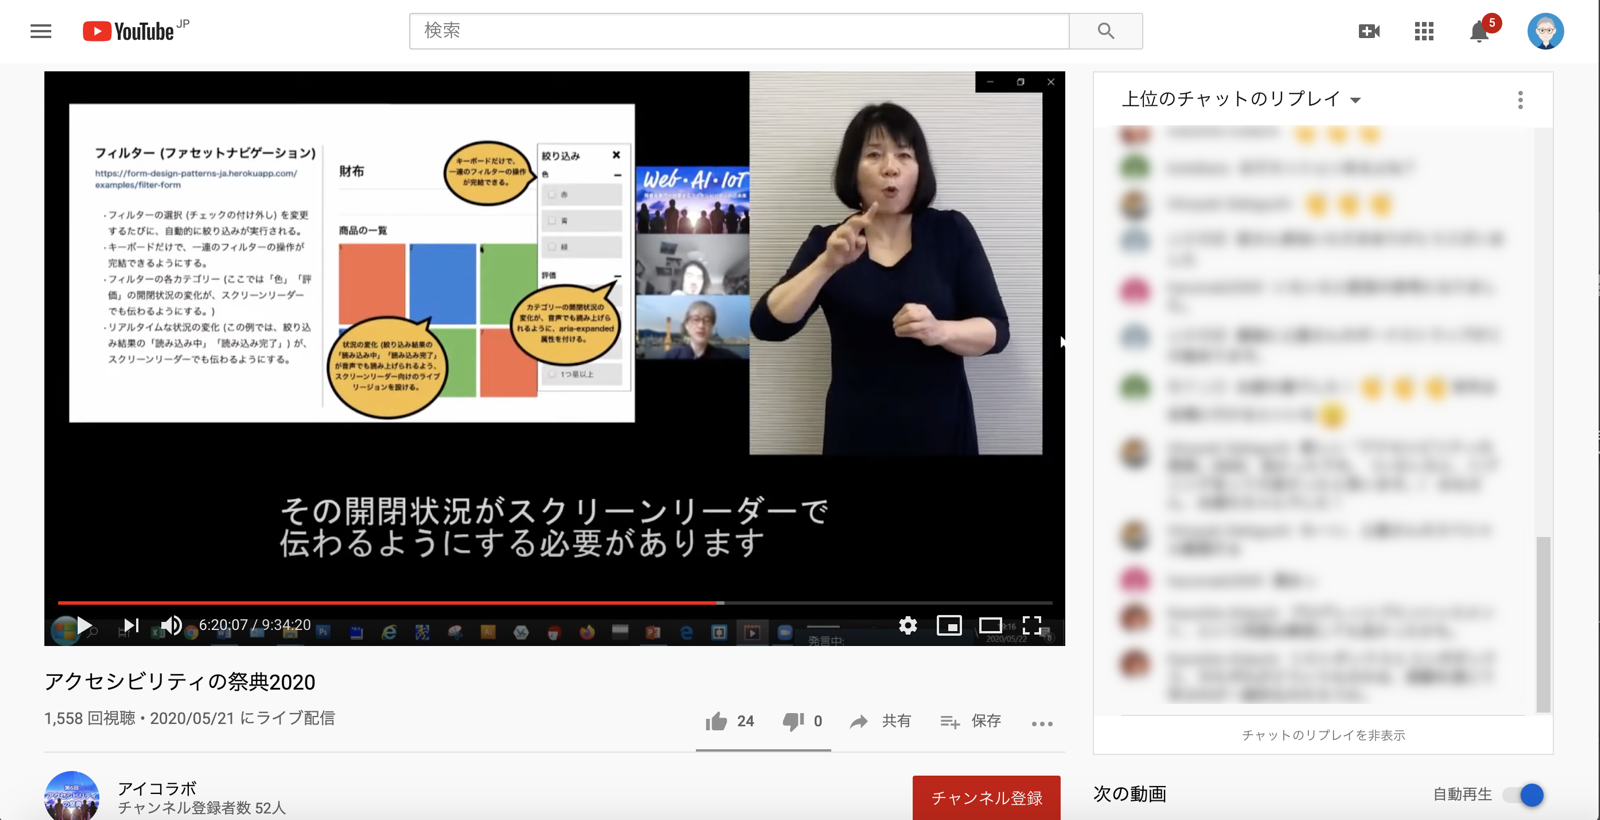 YouTube Live 画面